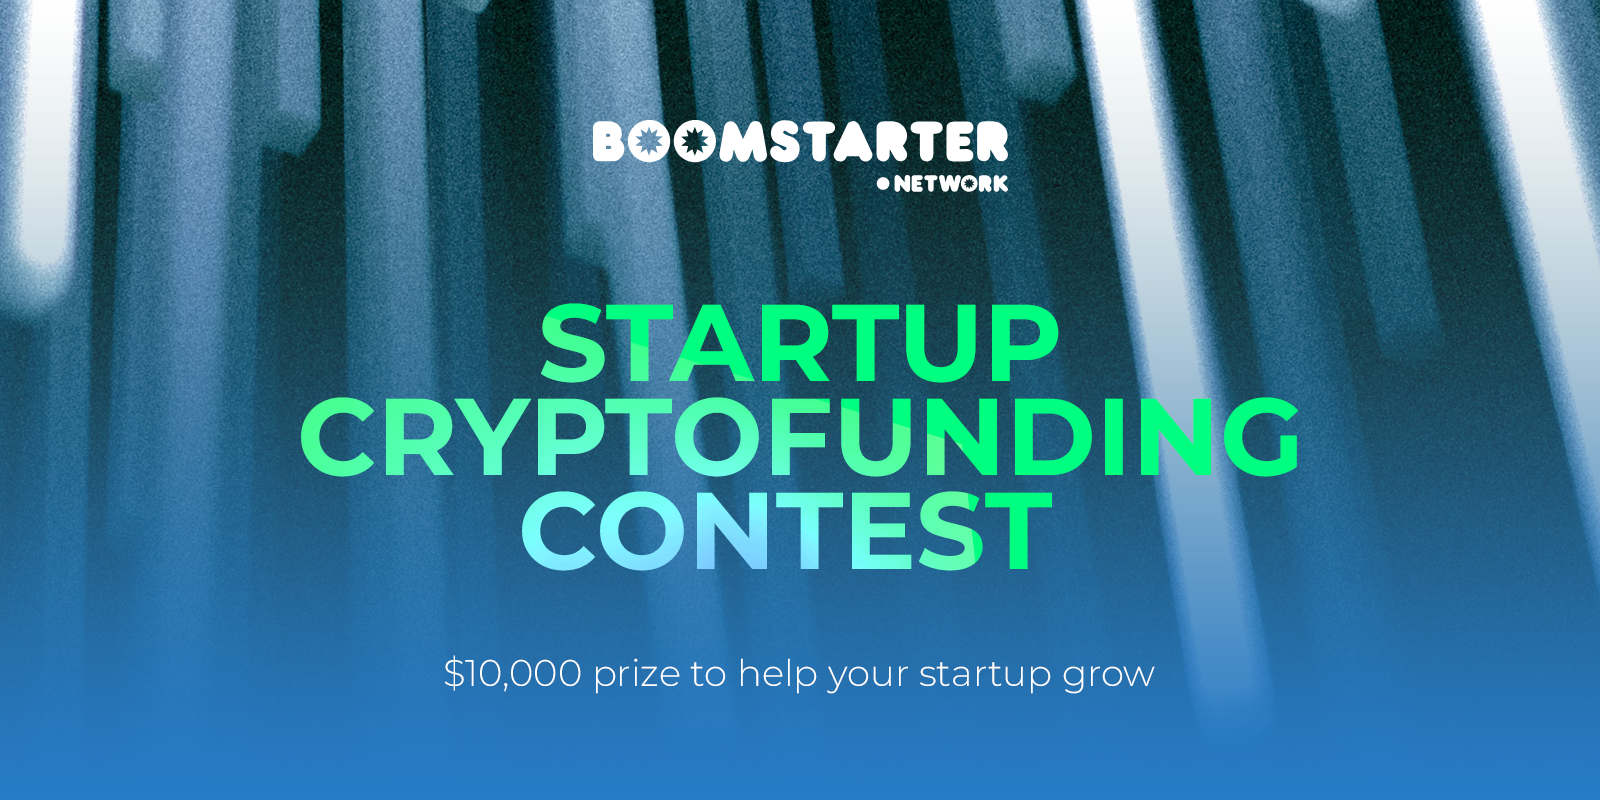 Boomstarter Launches Global Startup Contest With $10,000 Award on Its Blockchain Platform